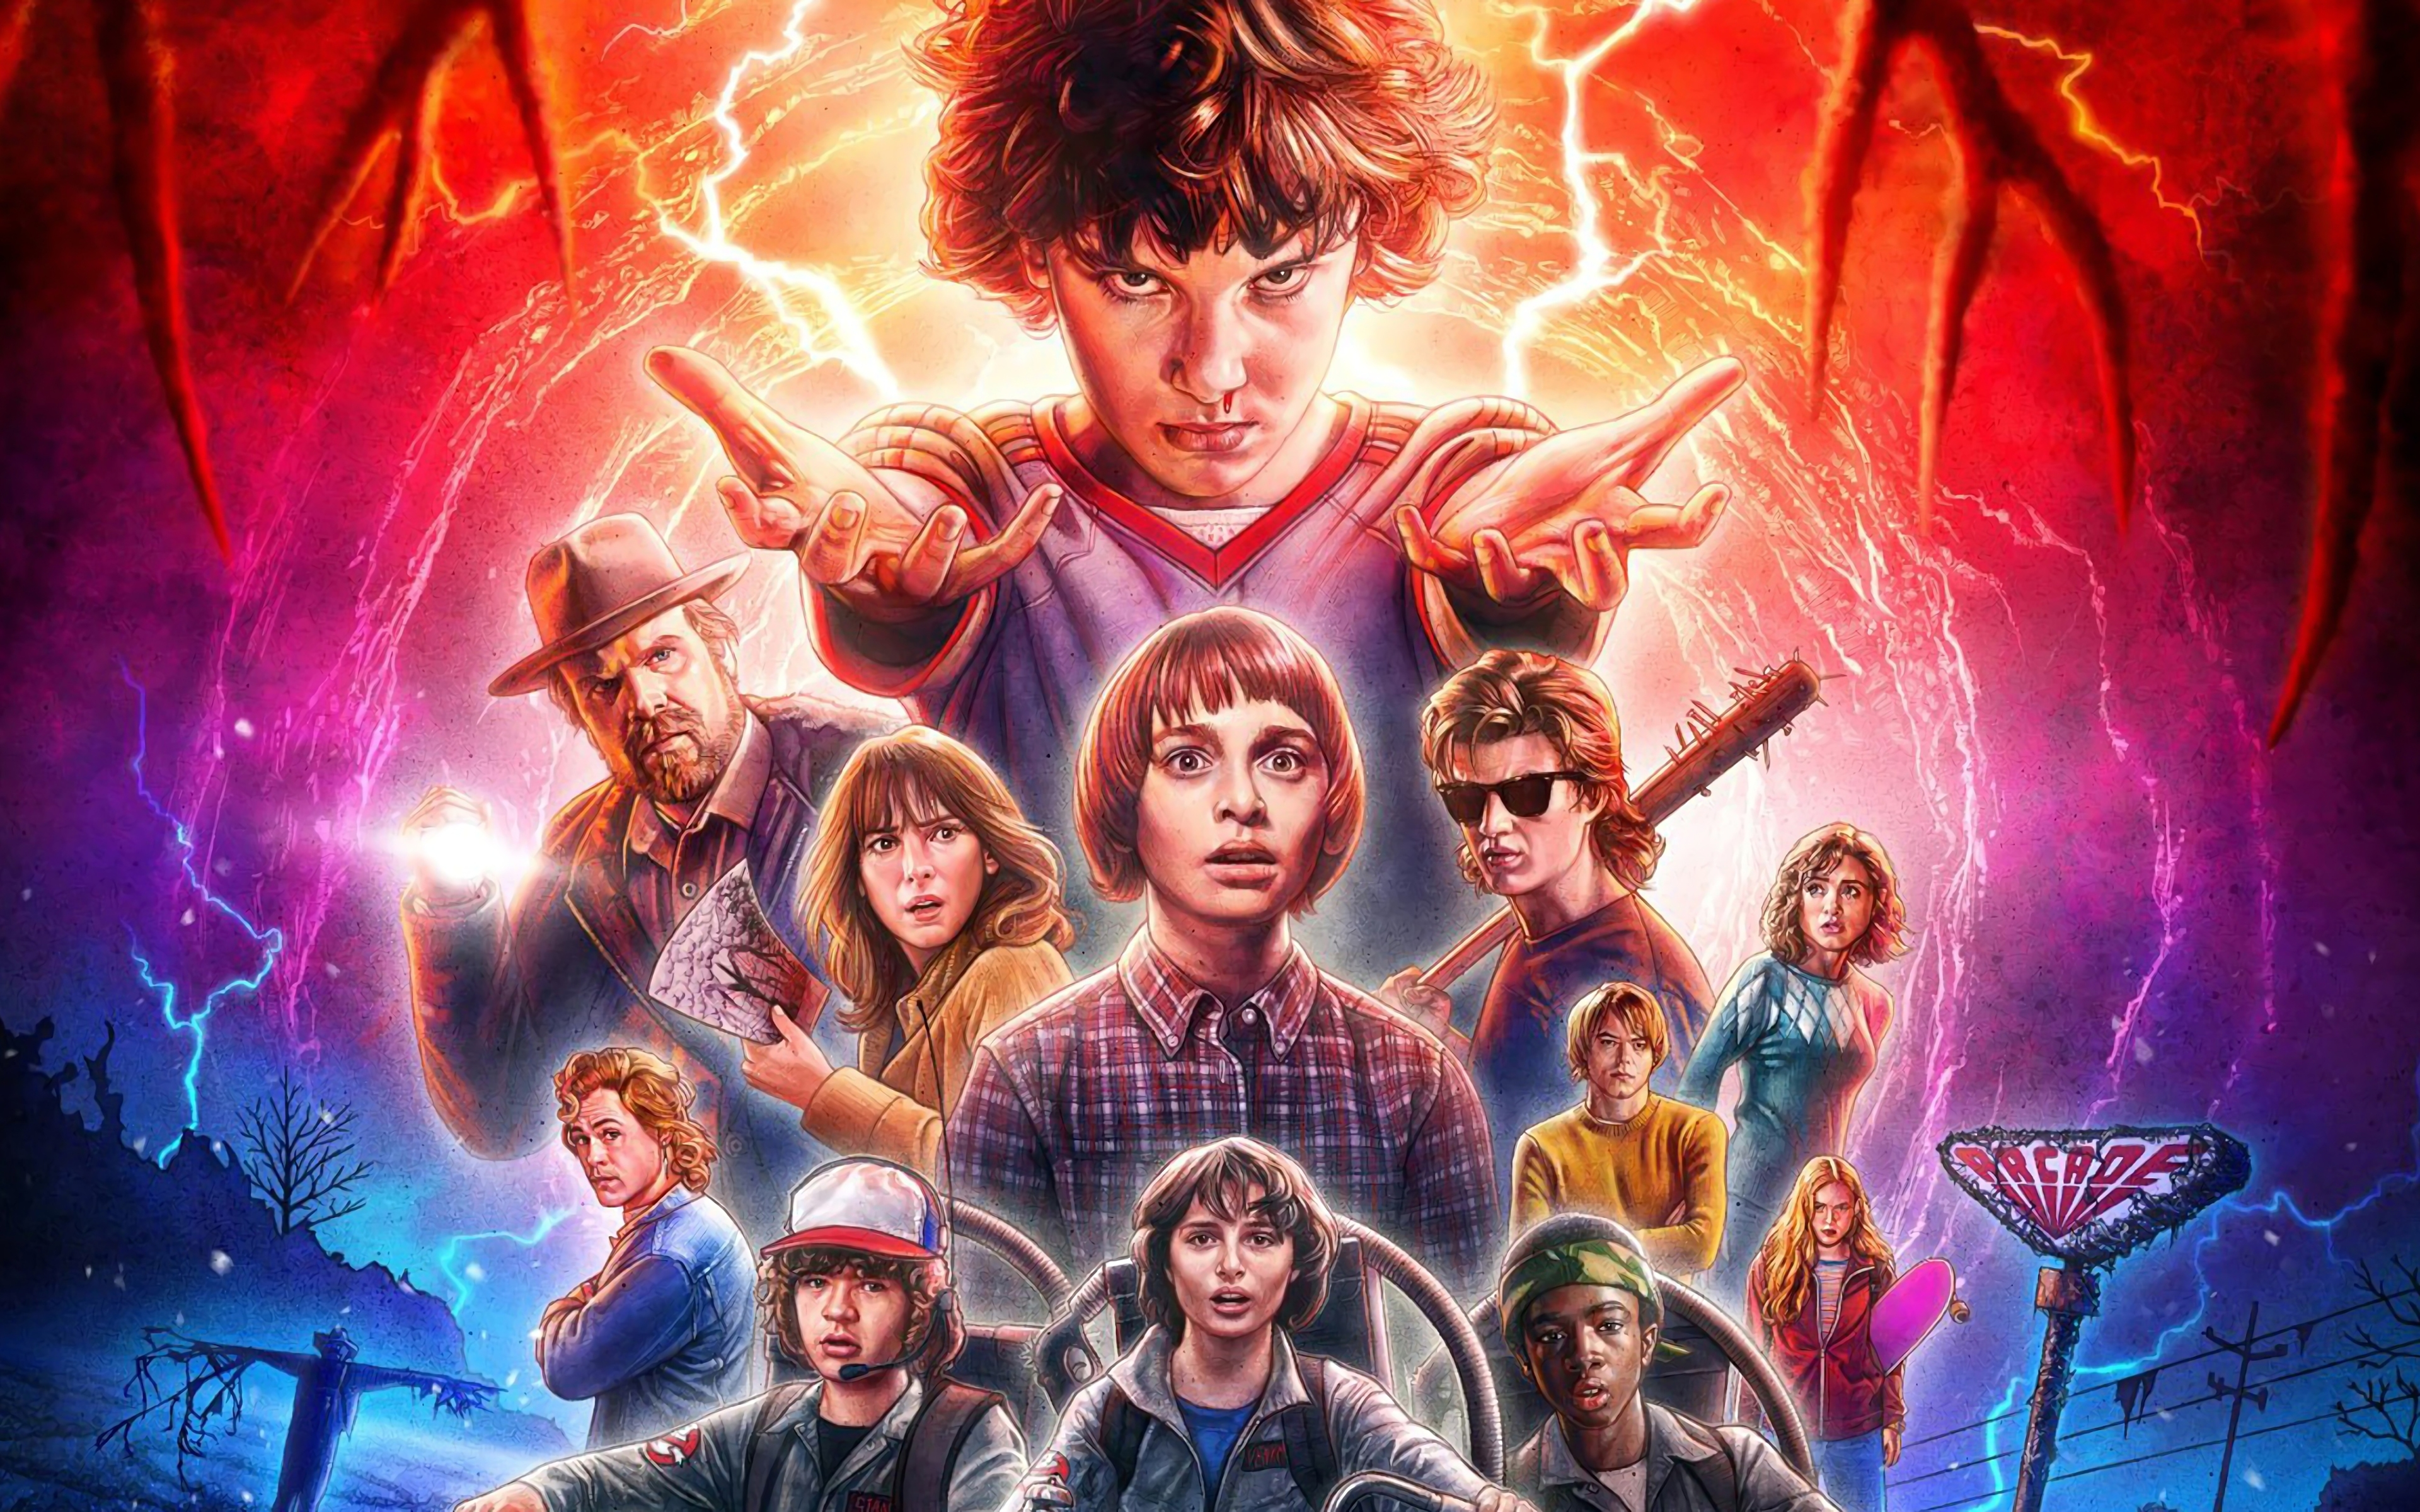 A love letter to the 80s classics that captivated a generation Stranger Things is set in 1983 Indiana where a young boy vanishes into thin air As